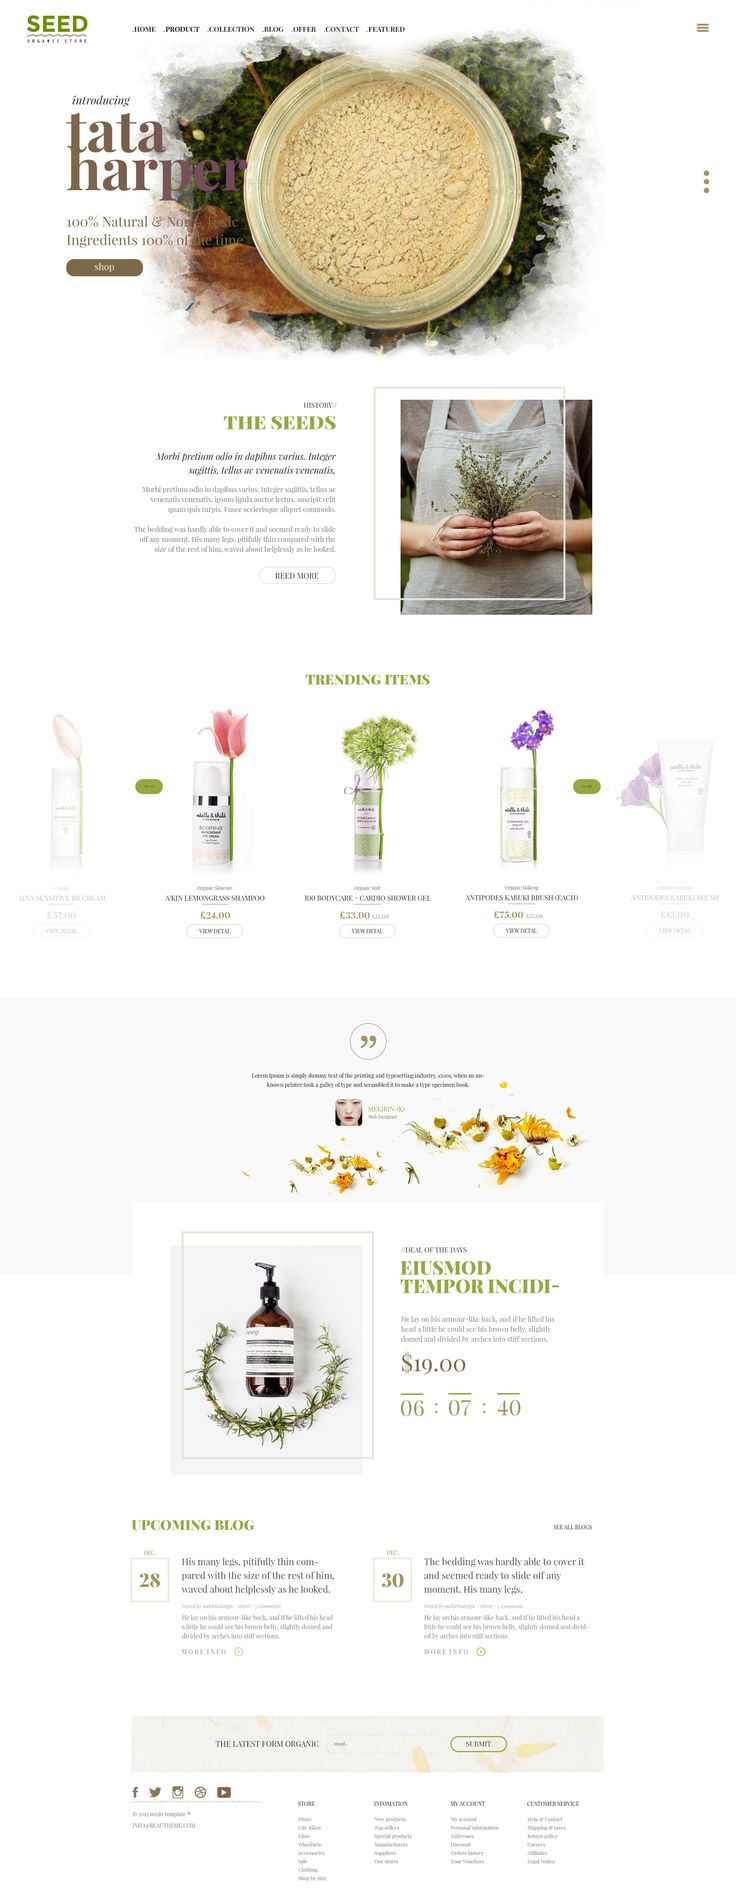 SEED is an amazing clean Wordpress template. With the most modern, friendly and natural style, customers will feel like they are standing in front of a large, green,fresh field. They will be overwhelmed by a huge amount of natural, safe andhealthy products you have.